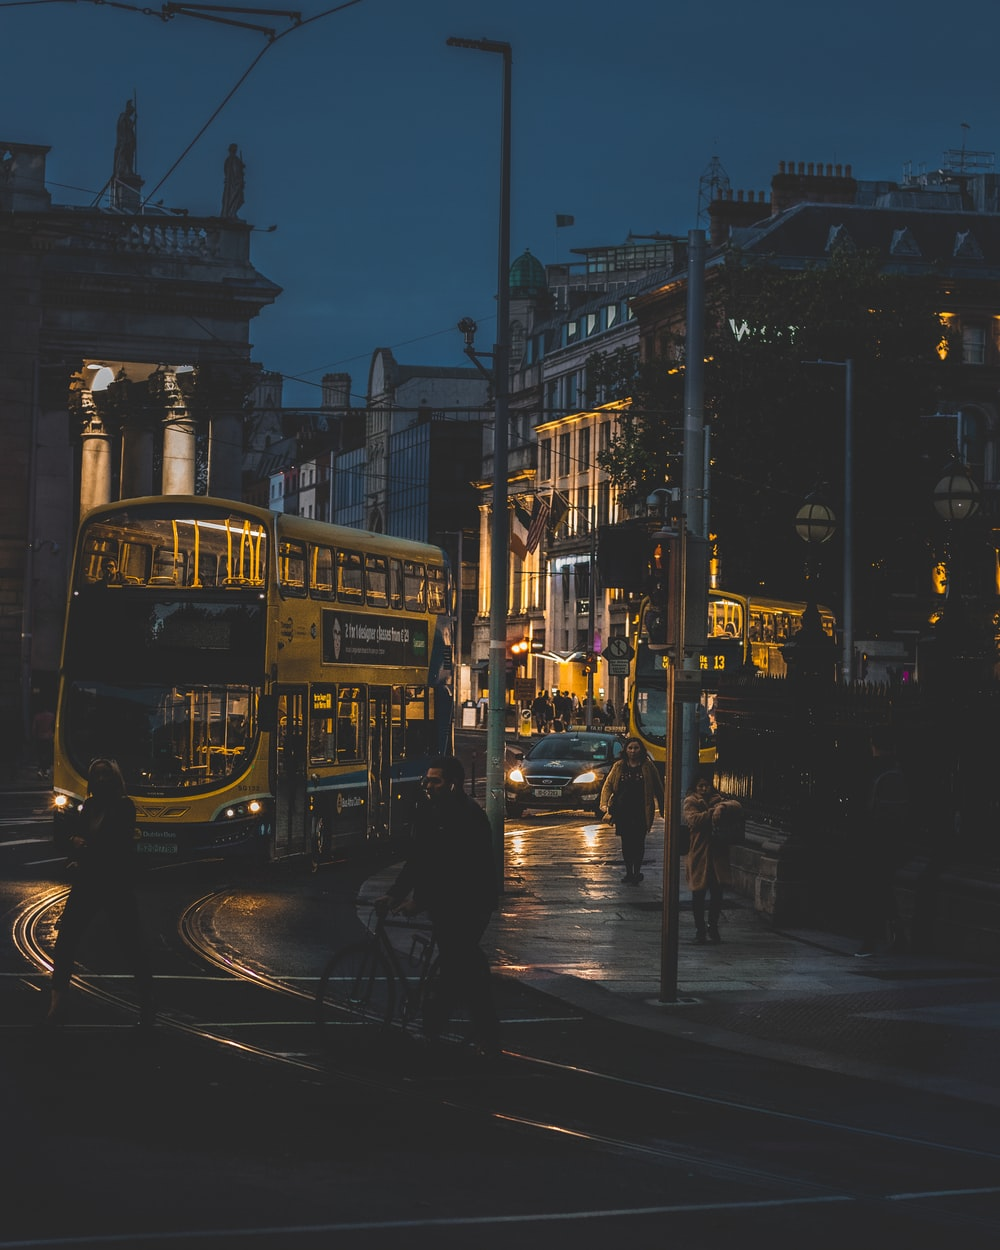 Bus At Night Pictures Download Free Images On Unsplash